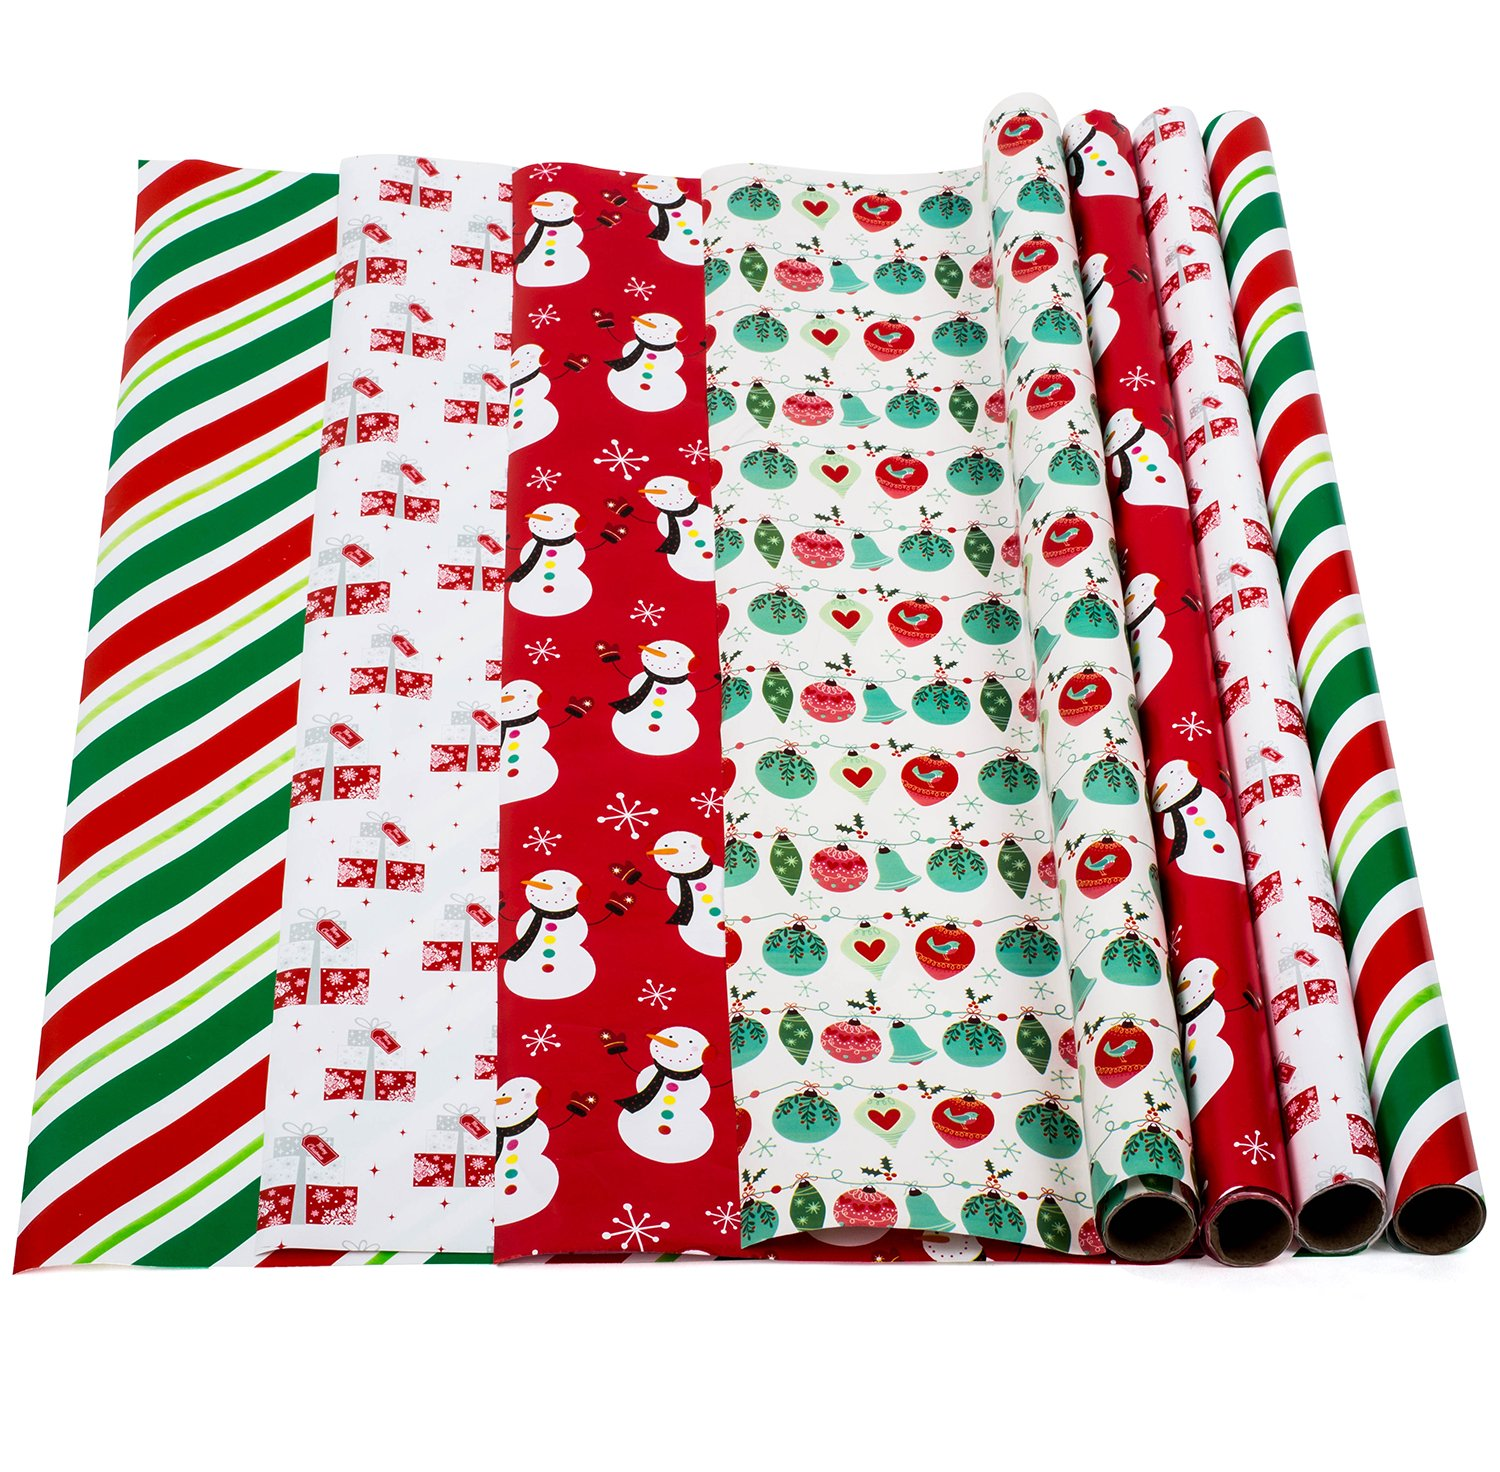 Amazon.com: Christmas Wrapping Paper - Holiday Gift Wrap - Premium ...